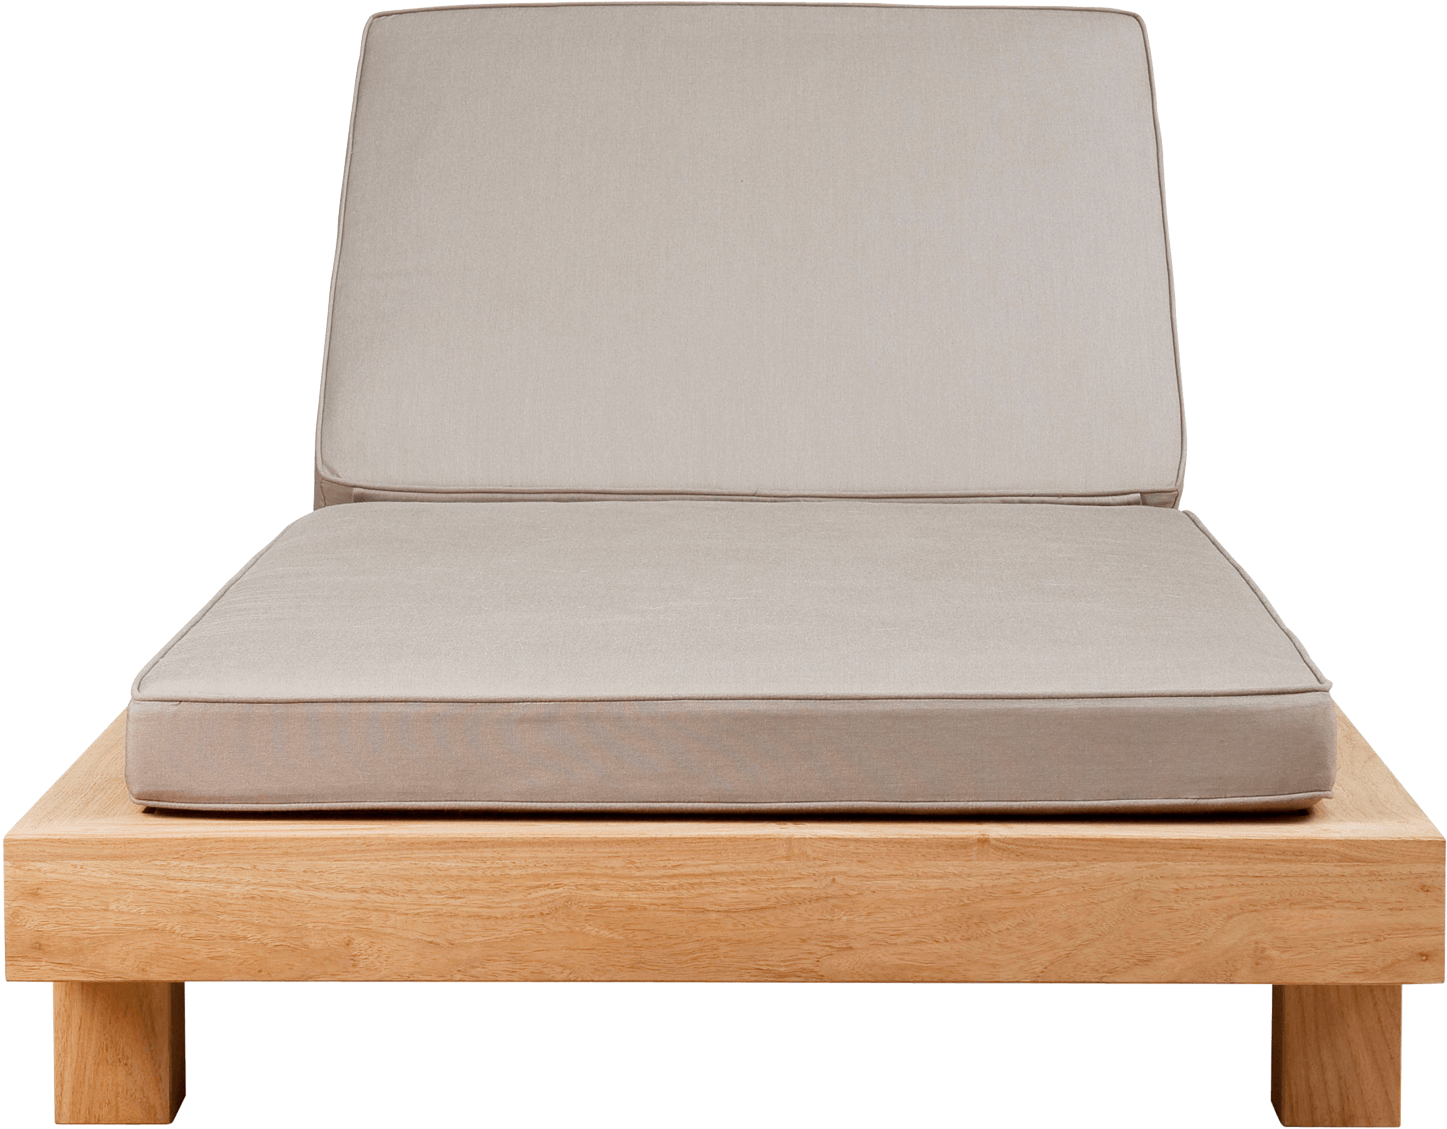 Bed top view png. Download hd pool chair